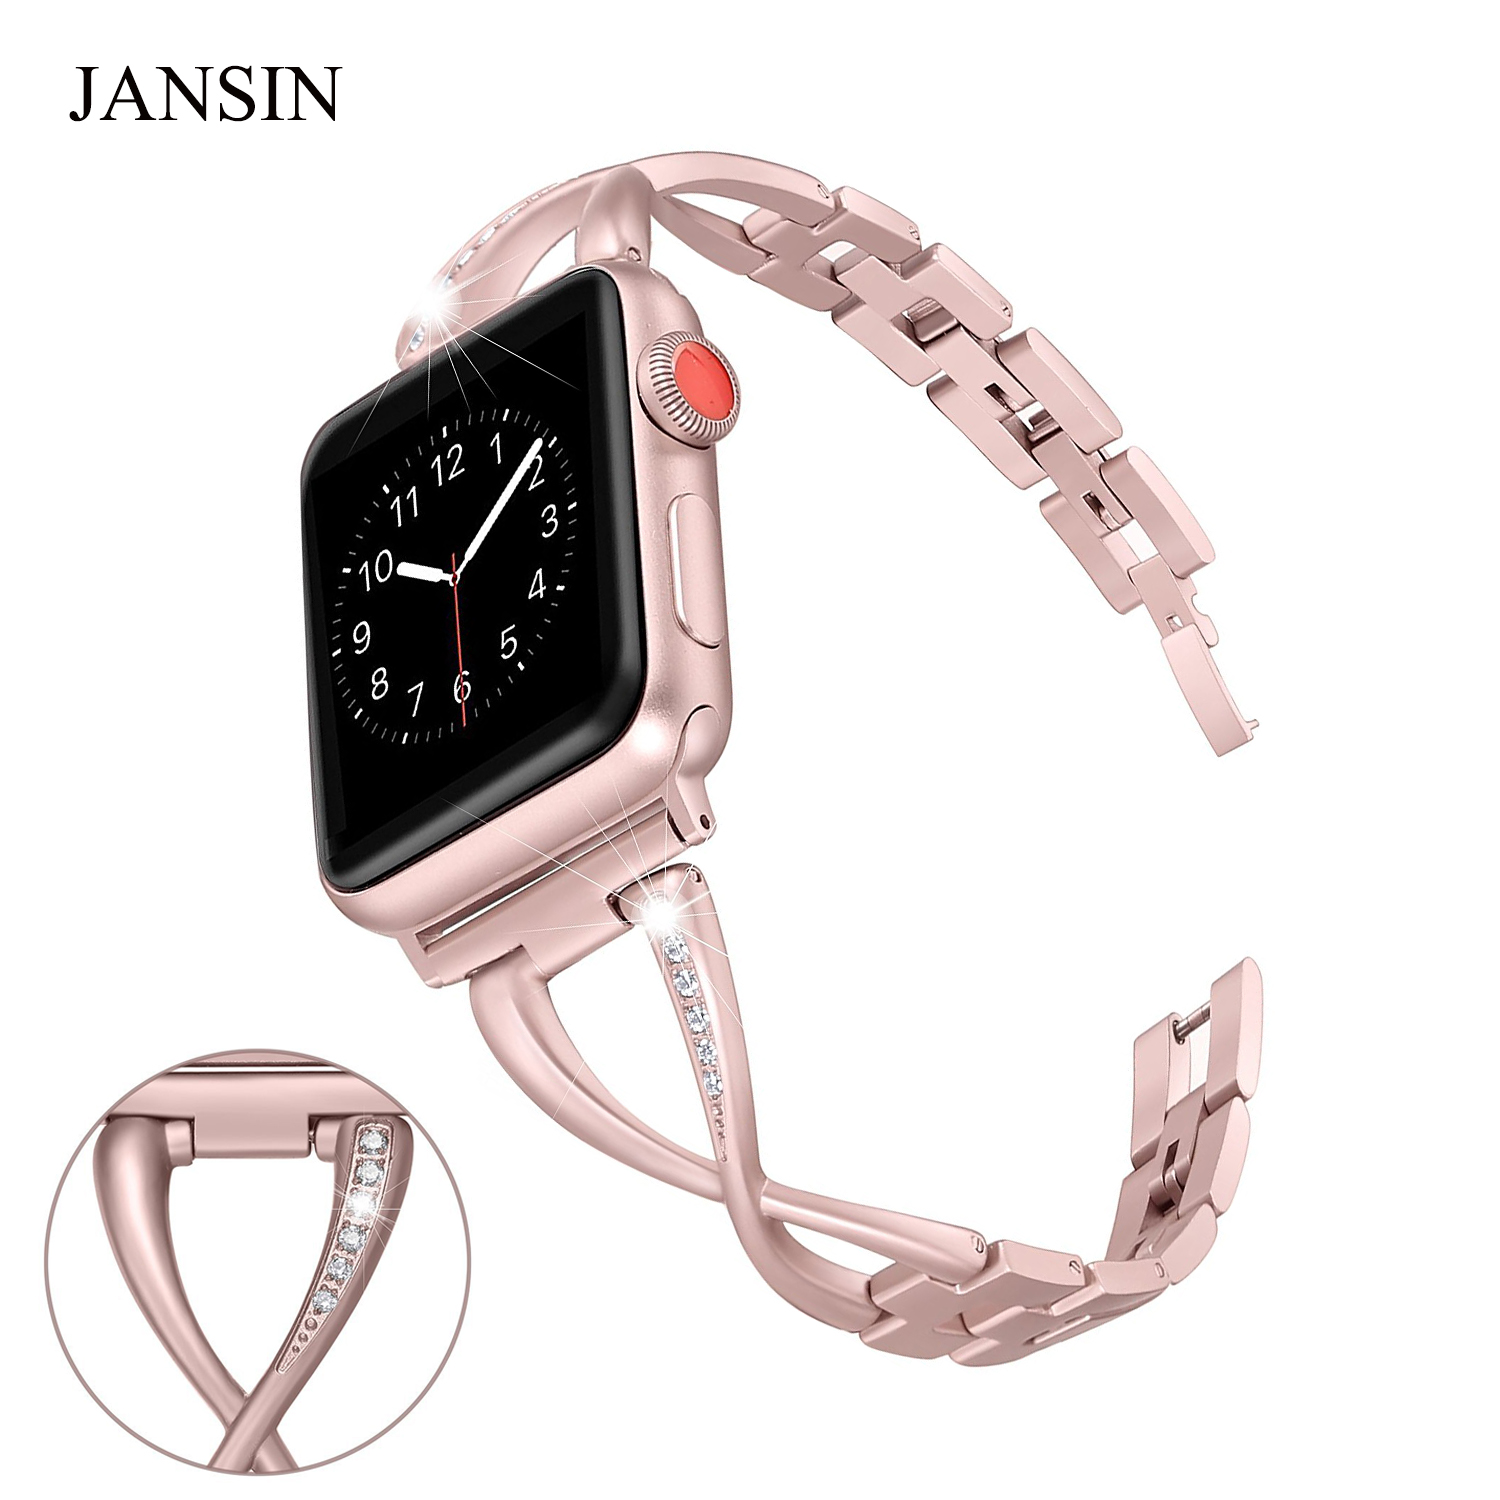 JANSIN Women Watch band for Apple Watch Bands 38mm/42mm/40mm 44mm diamond Stainless Steel Strap for iwatch series 4 3 2 Bracelet jansin strap band for apple watch 40mm 44mm 42mm 38mm for iwatch 3 2 1 stainless steel watch band link bracelet watchband strap